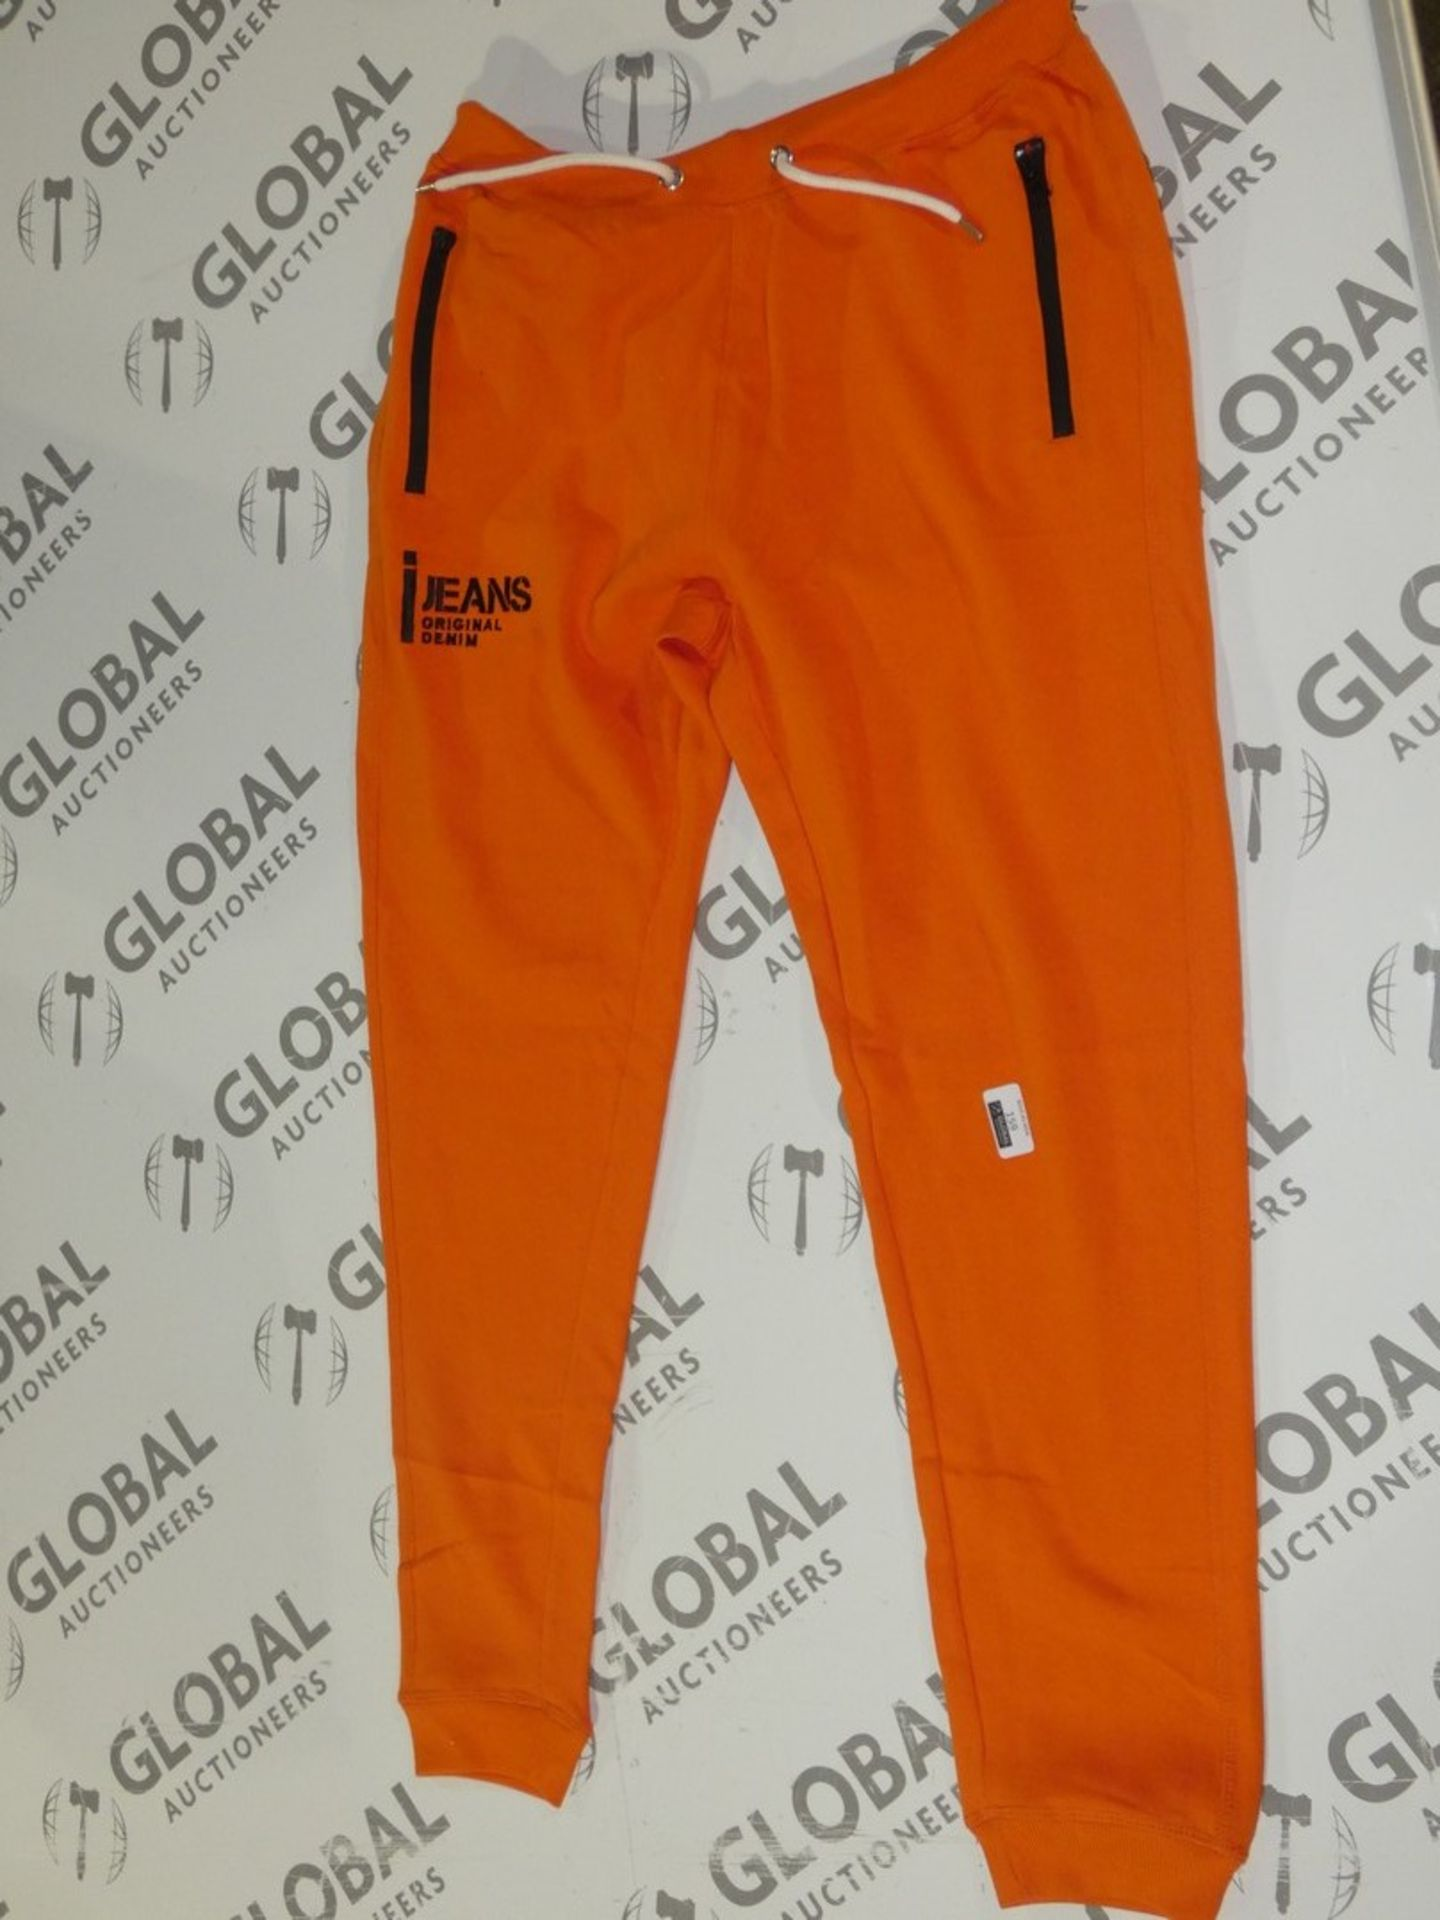 Lot 160 - Assorted Brand New Pairs Of Ijeans Original Denim Orange Lounging Pants In Assorted Sizes RRP £25